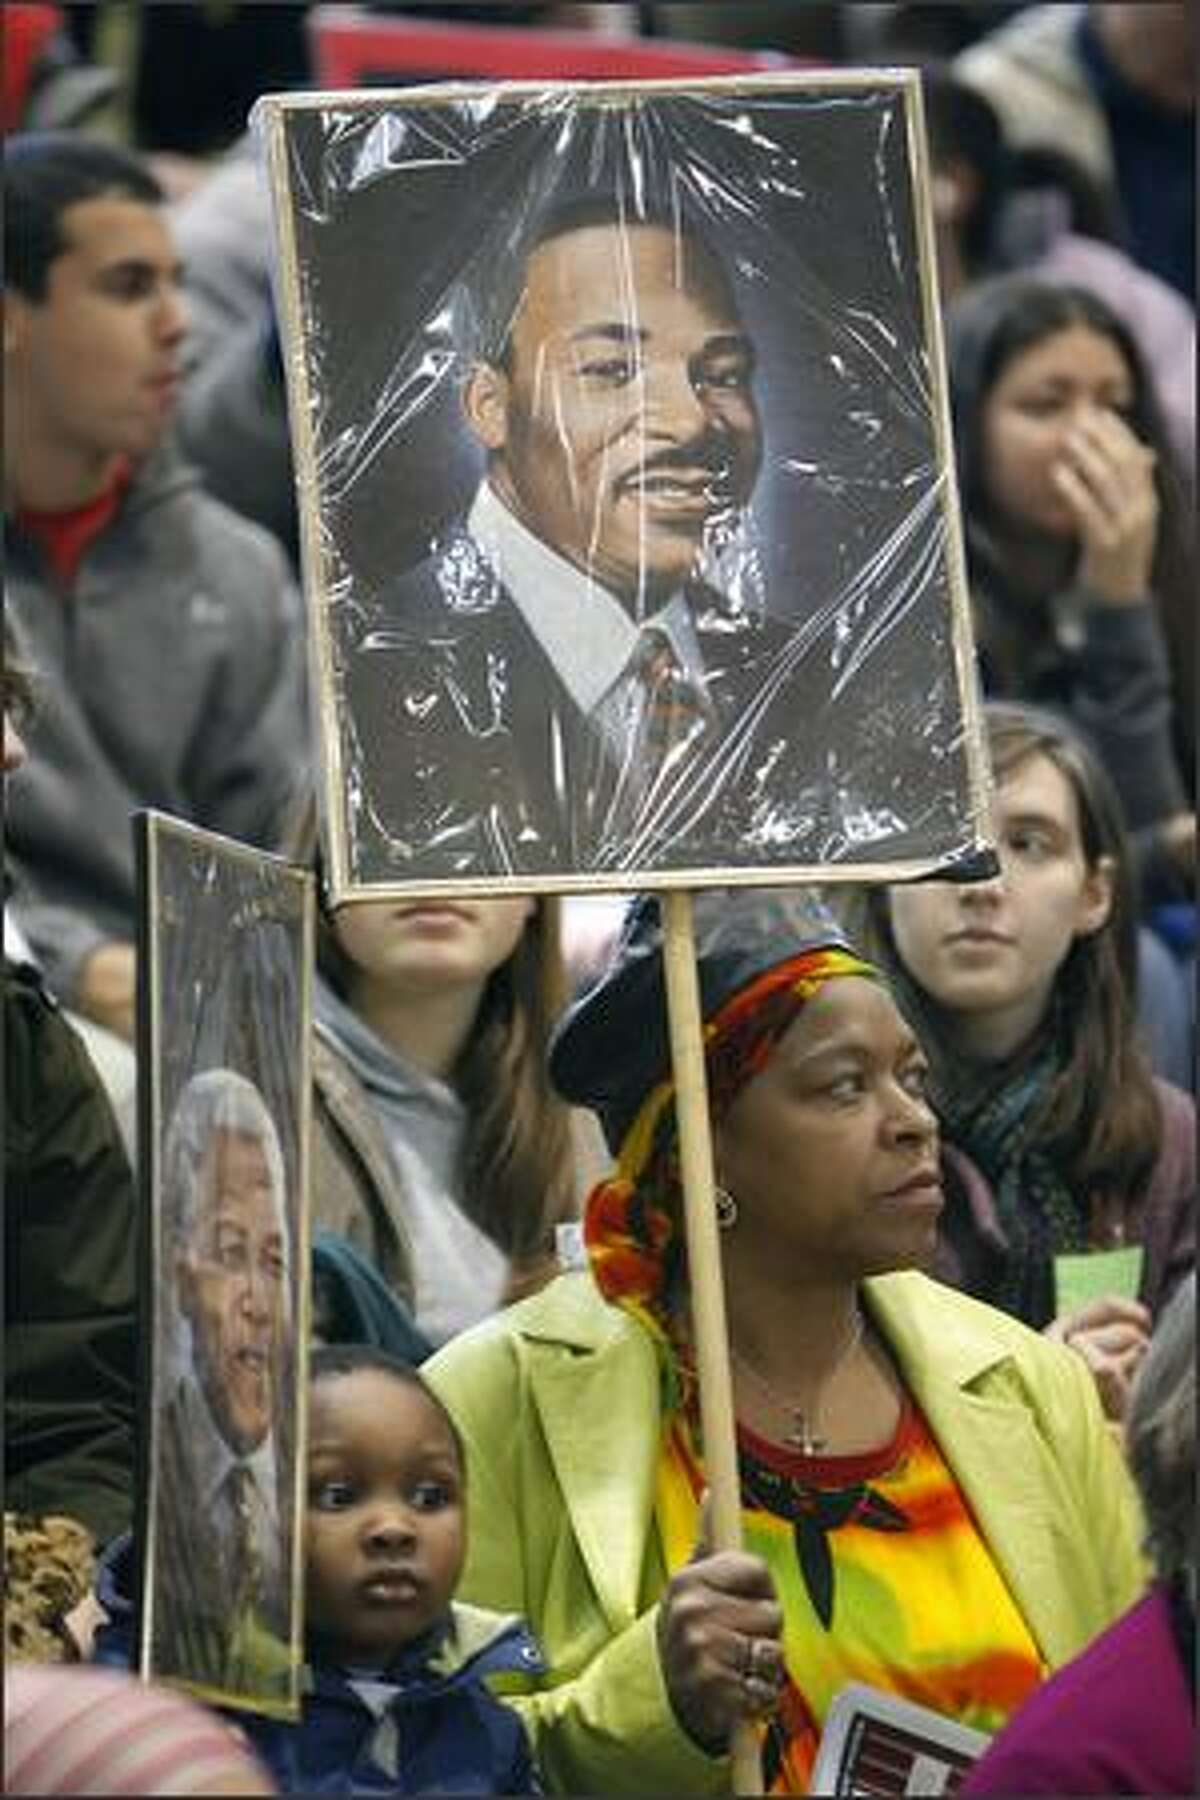 Davon Fuller holds a photo of Nelson Mandela as he squeezes in beside his grandmother, Fai Mathews, who holds a poster of Martin Luther King Jr. in the gym at Franklin High School on Monday. (Photo/Seattle Post-Intelligencer, Gilbert W. Arias)